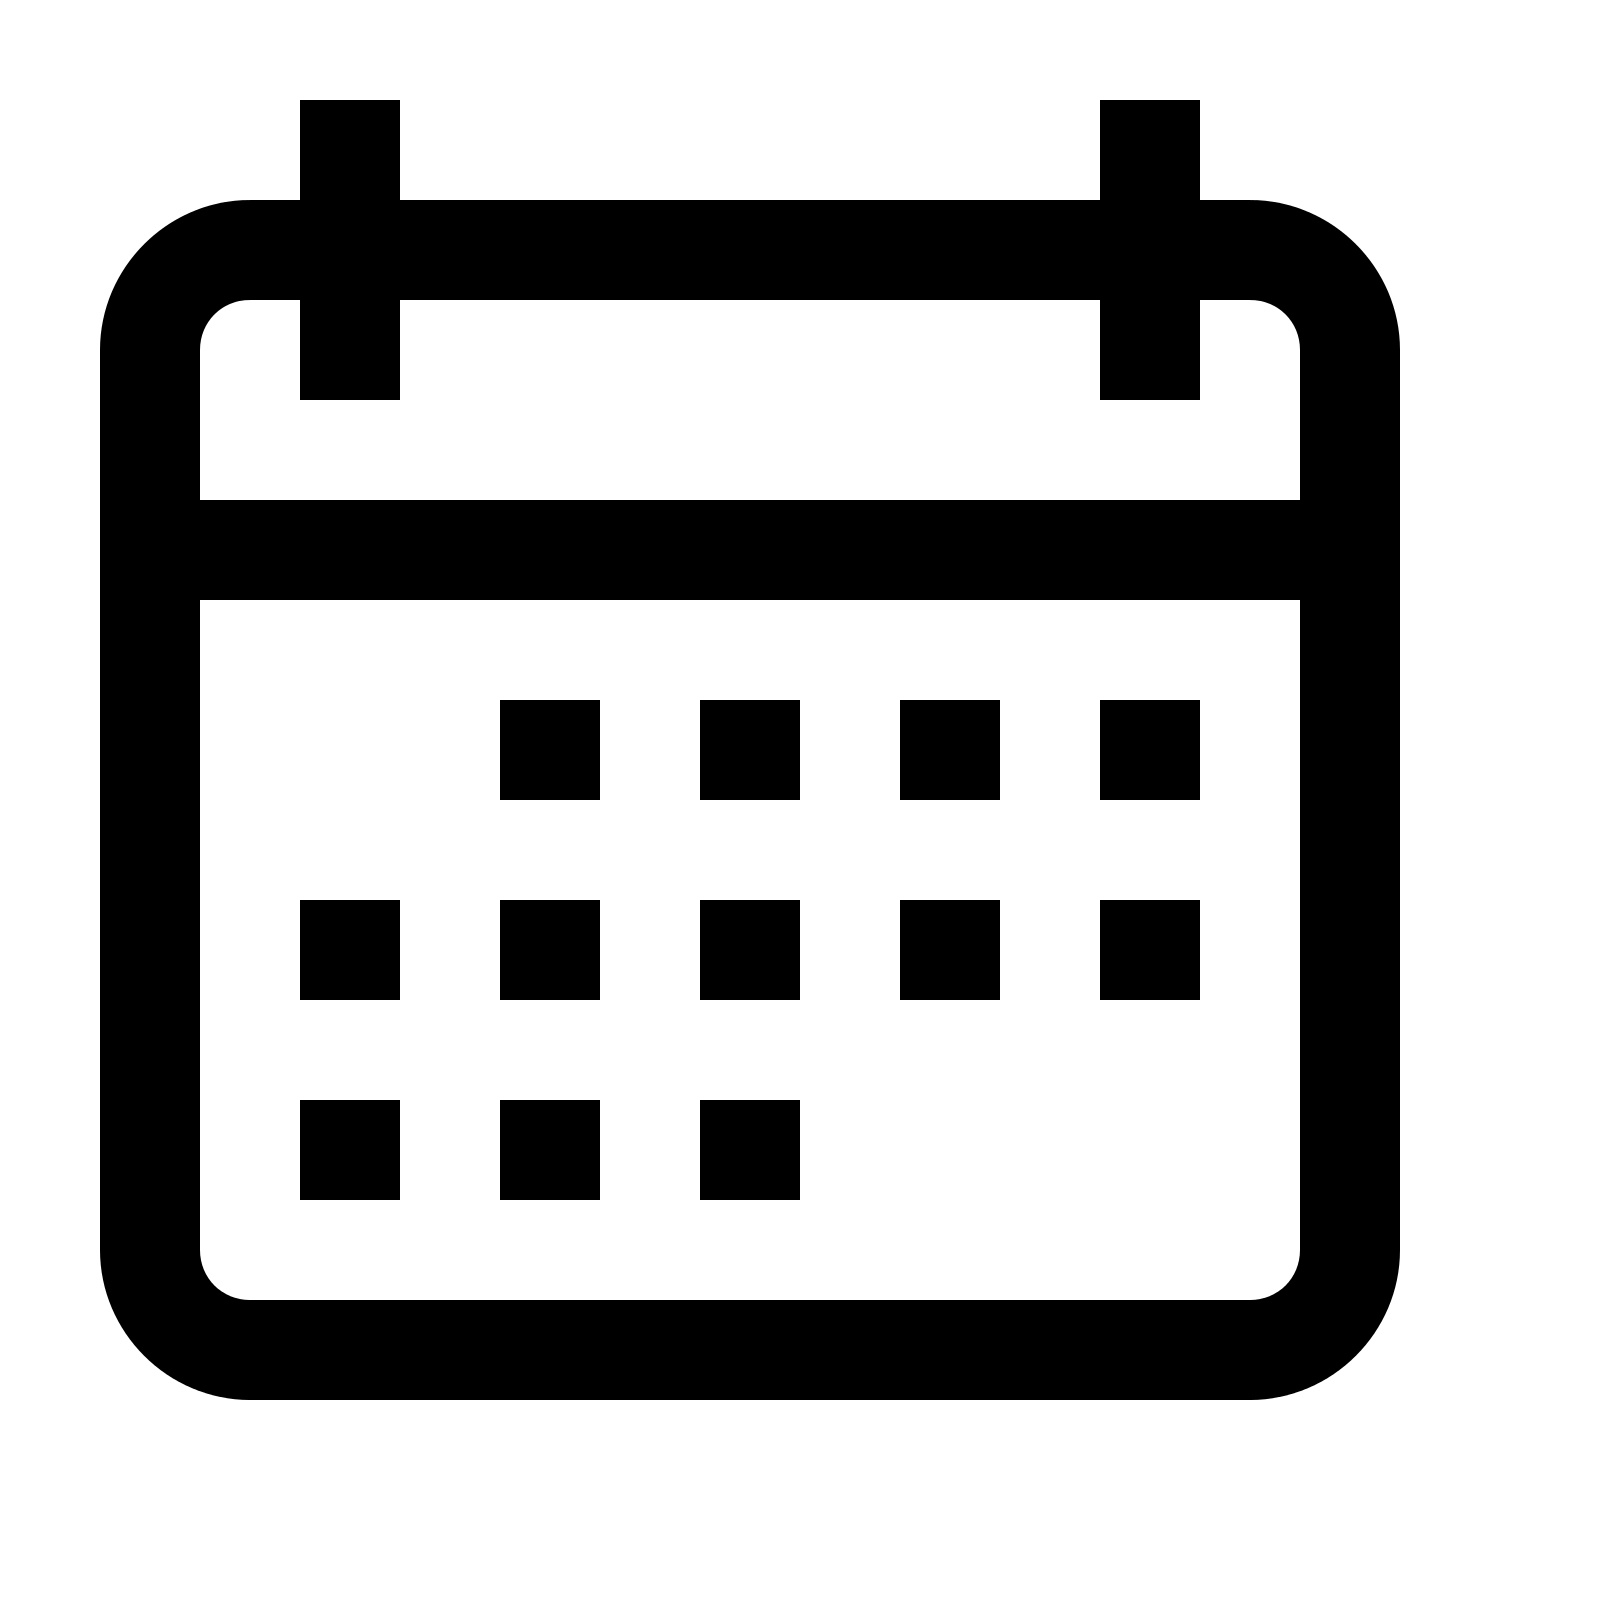 Calendar Icon #17828 - Free Icons Library_Calendar Icon Code In Html